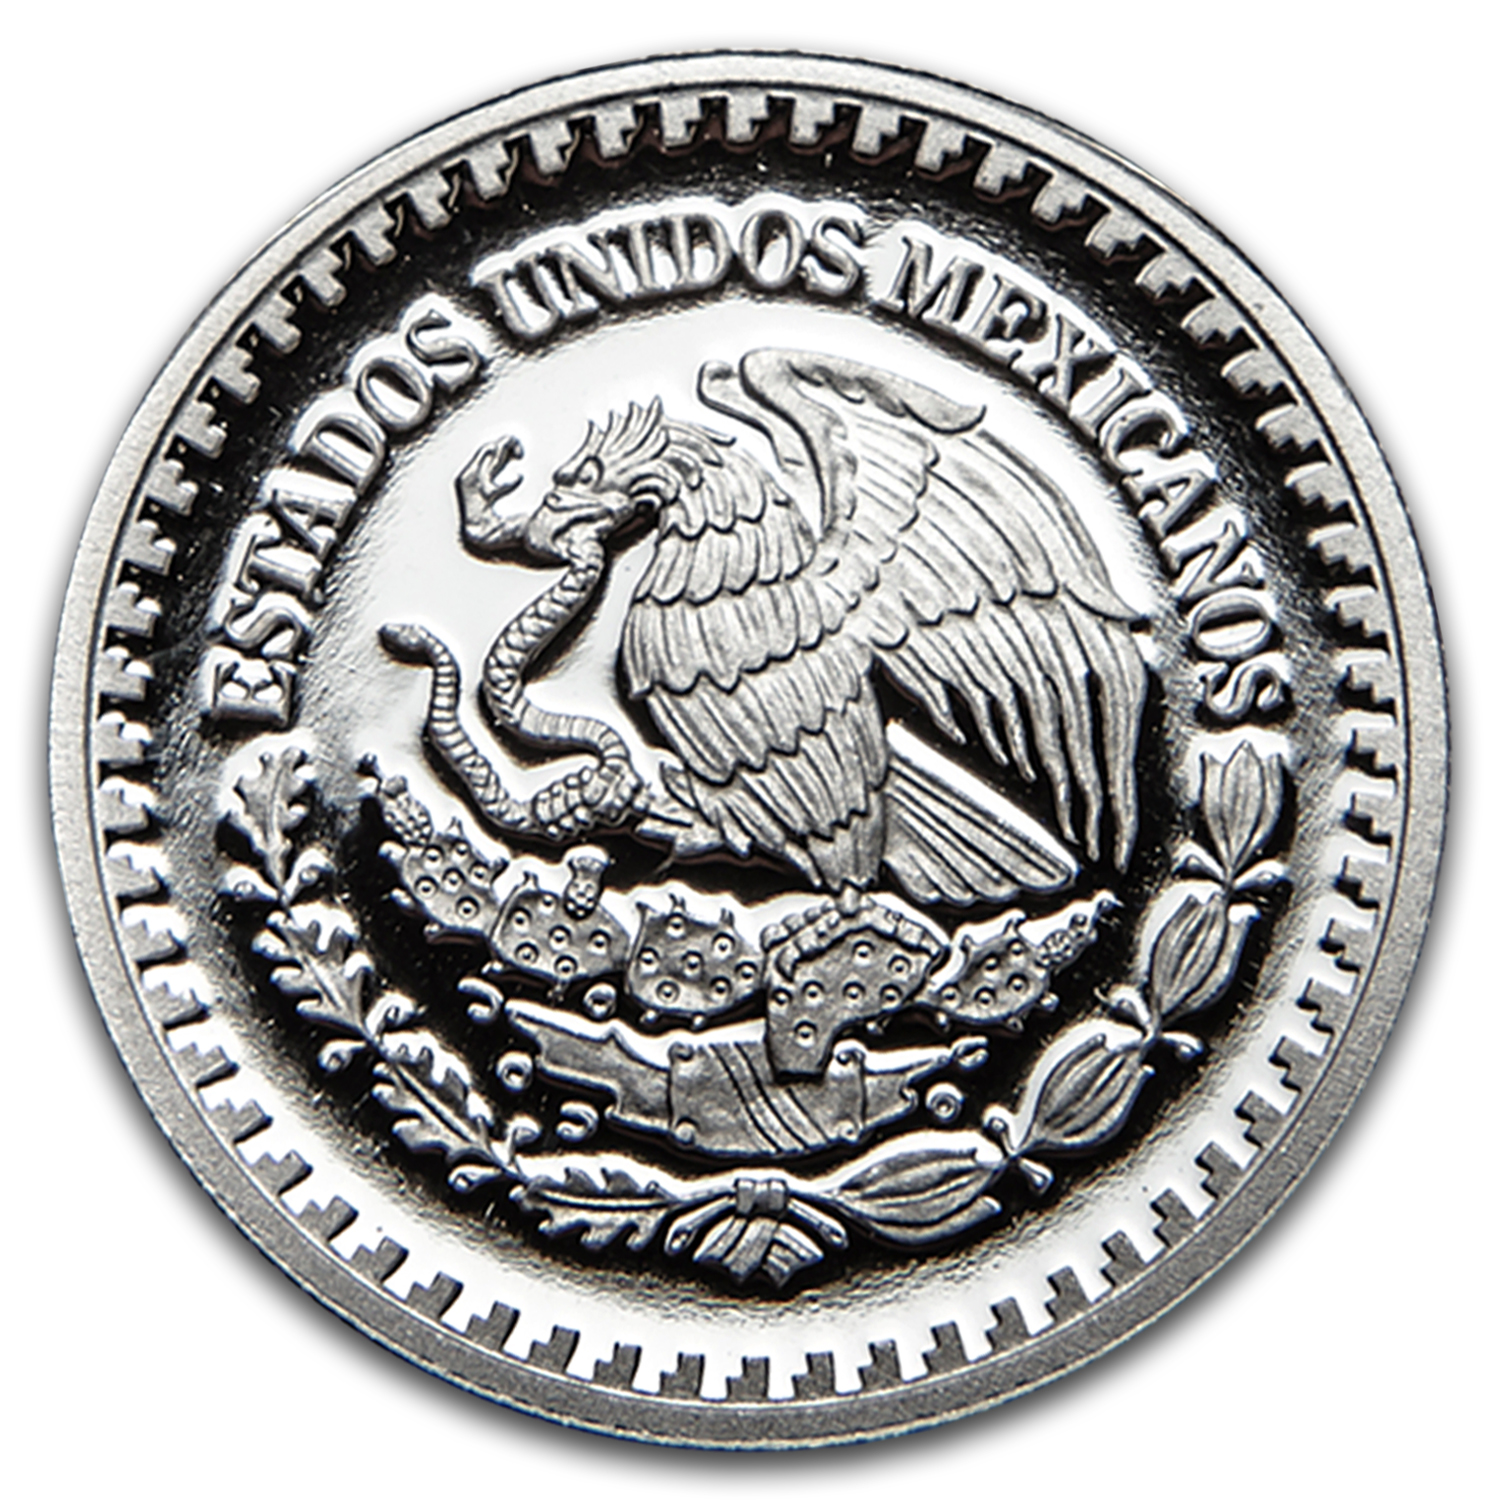 2016 Mexico 1/4 oz Silver Libertad Proof (In Capsule)